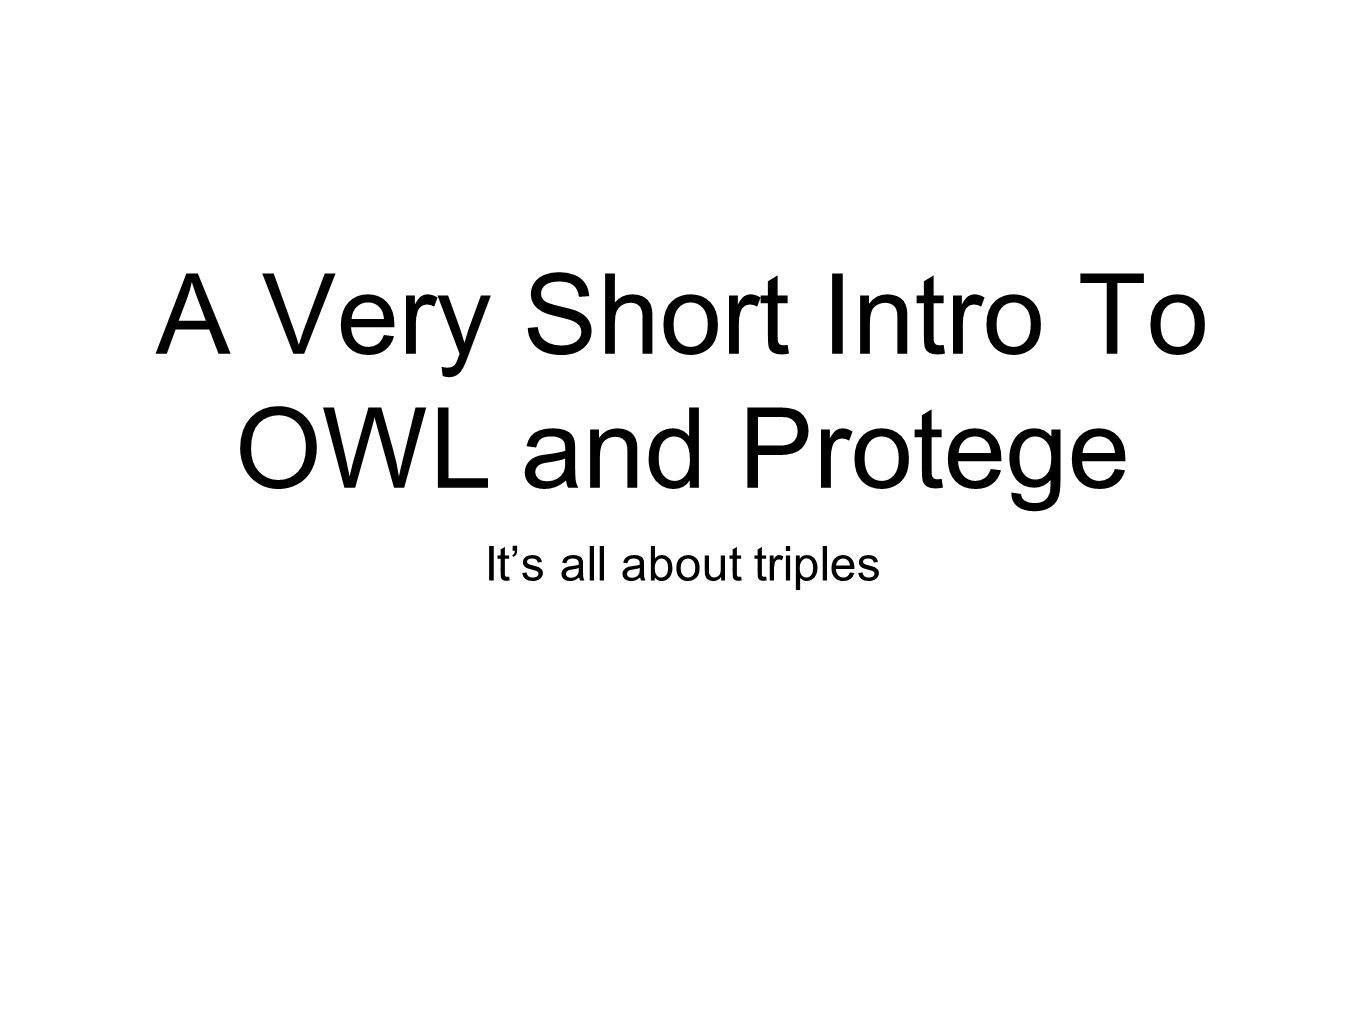 A Very Short Intro To OWL and Protege